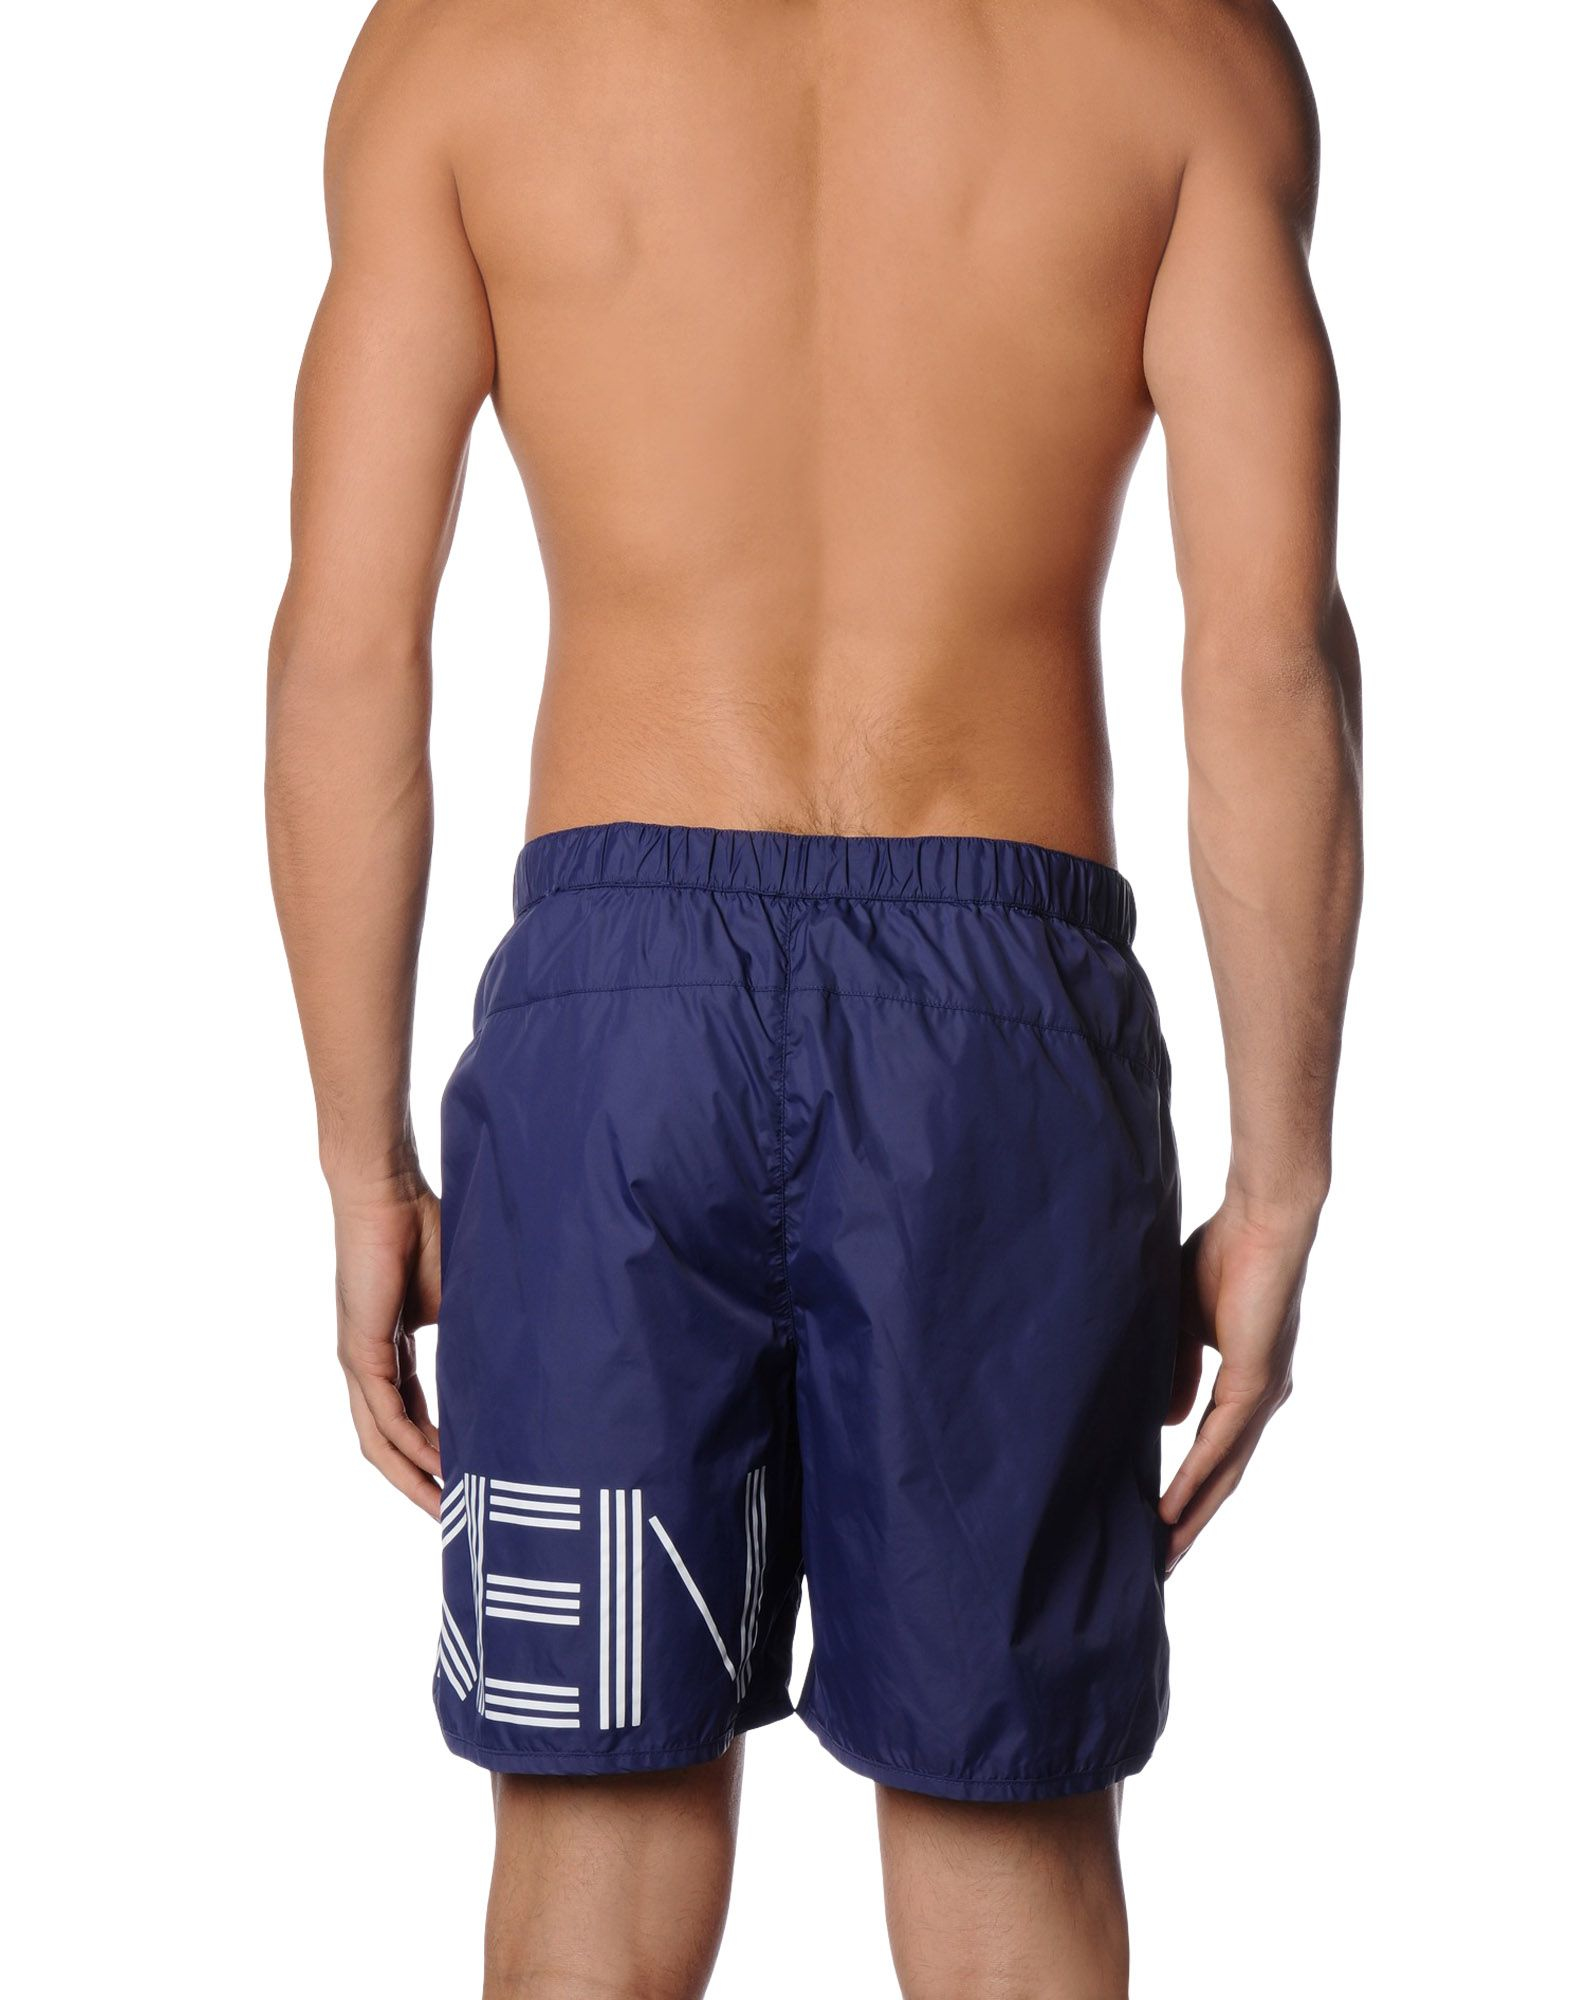 359780a81a0b0 KENZO Swimming Trunk in Blue for Men - Lyst